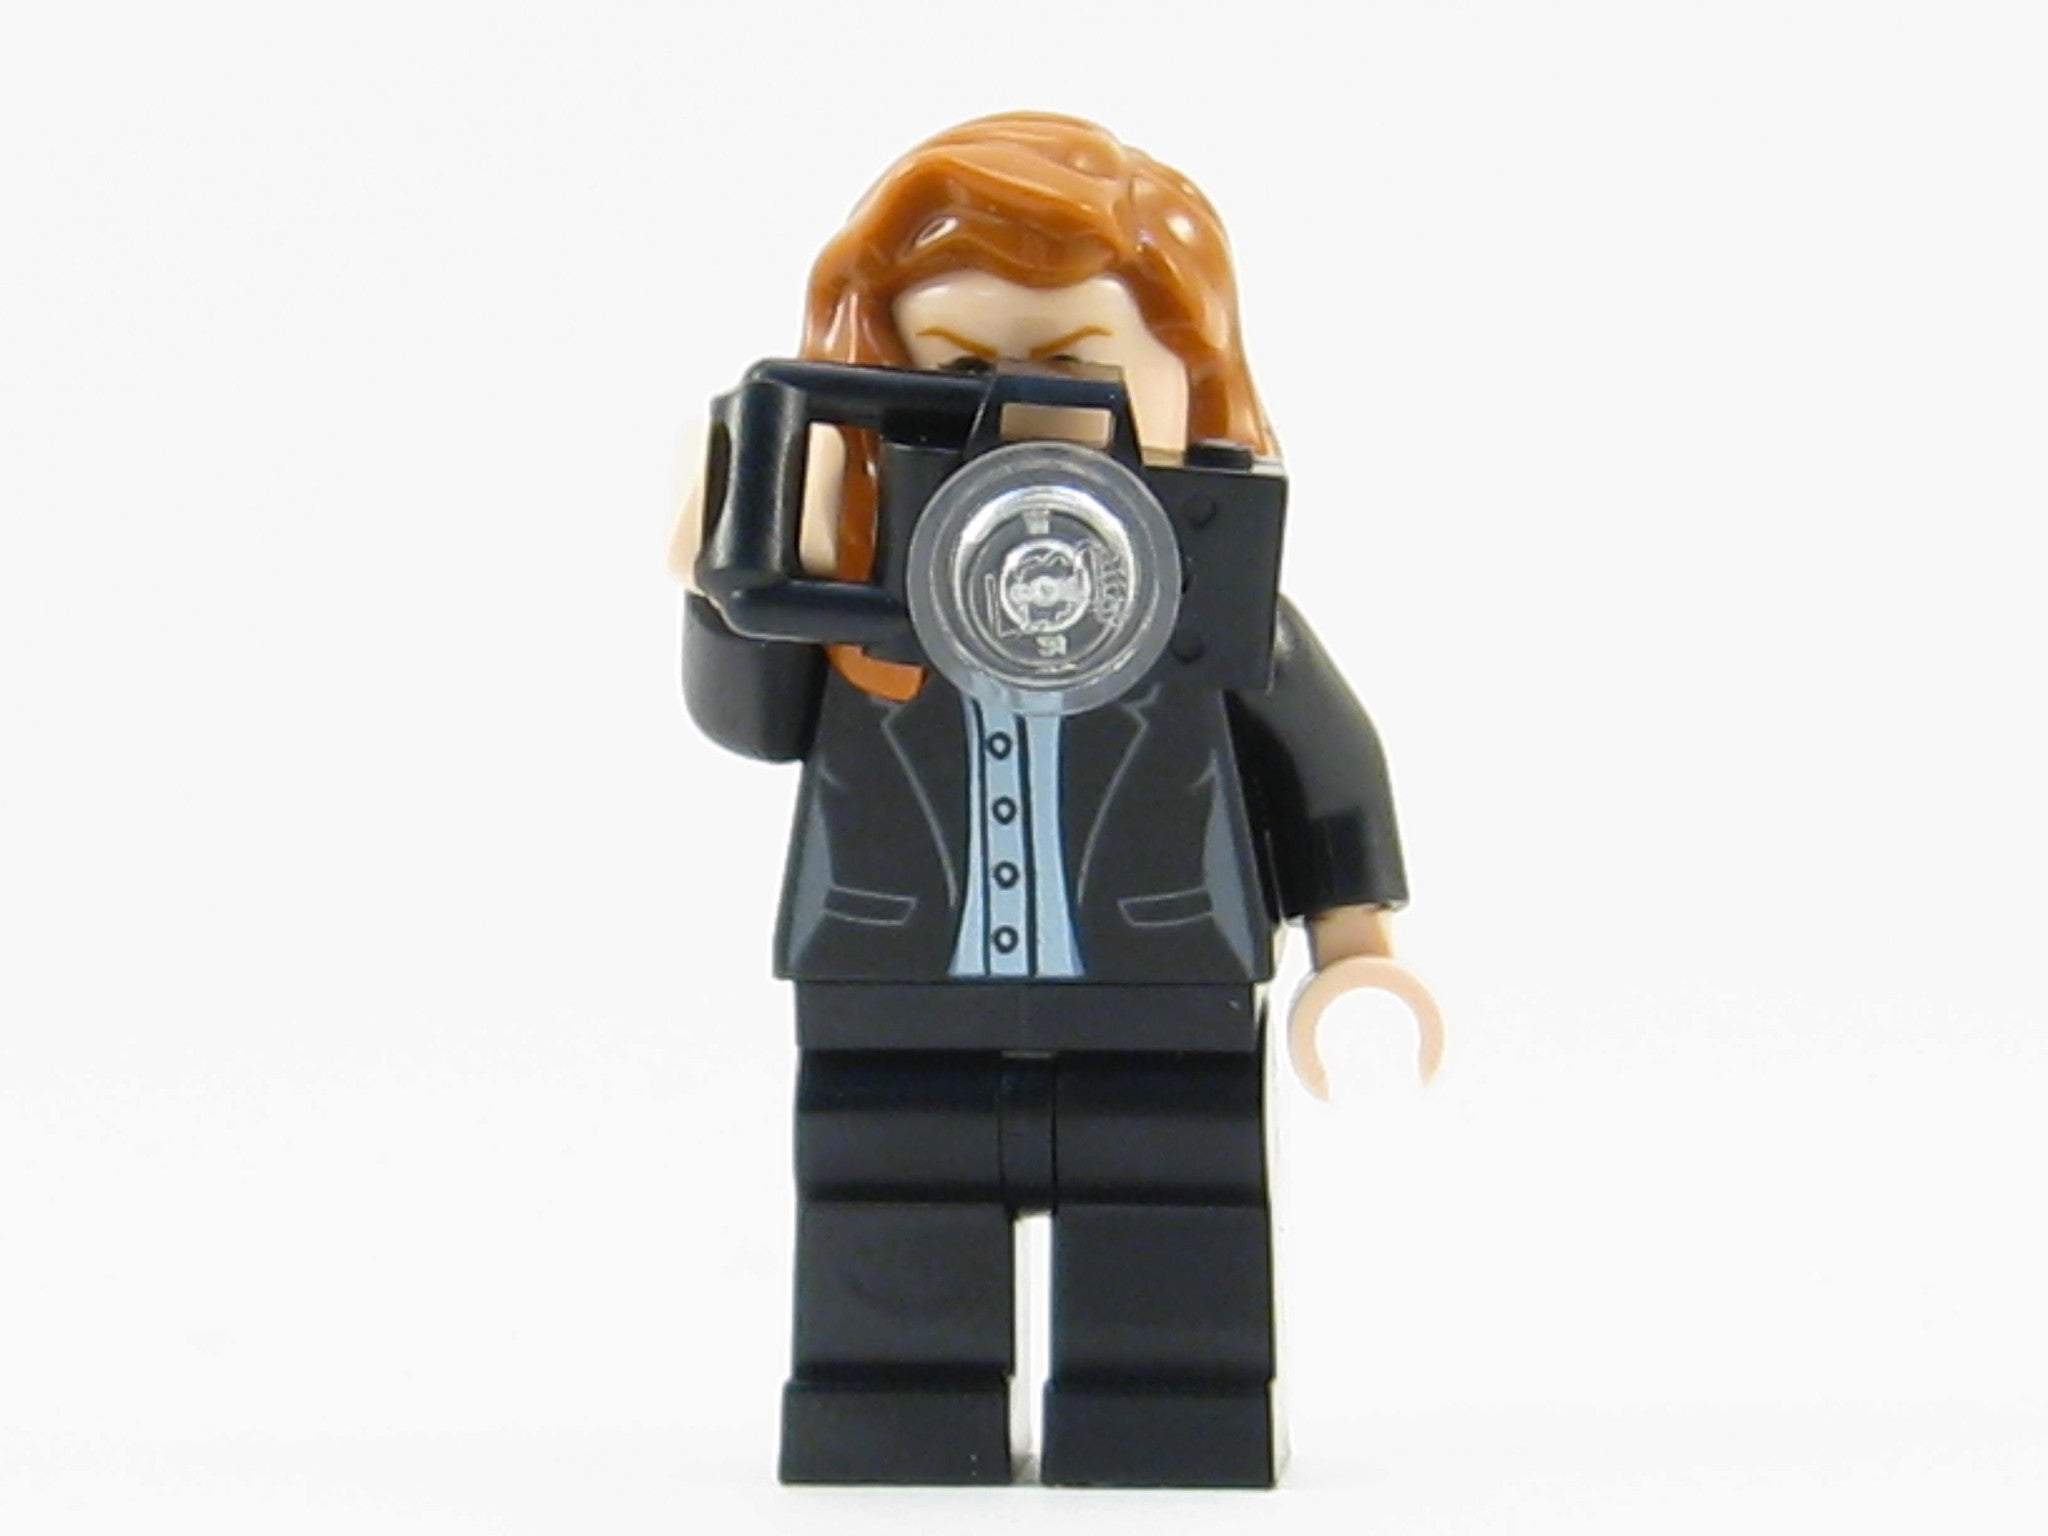 Lego Minifig Camera : Lego dc super heroes lois lane minifigure mini fig with camera